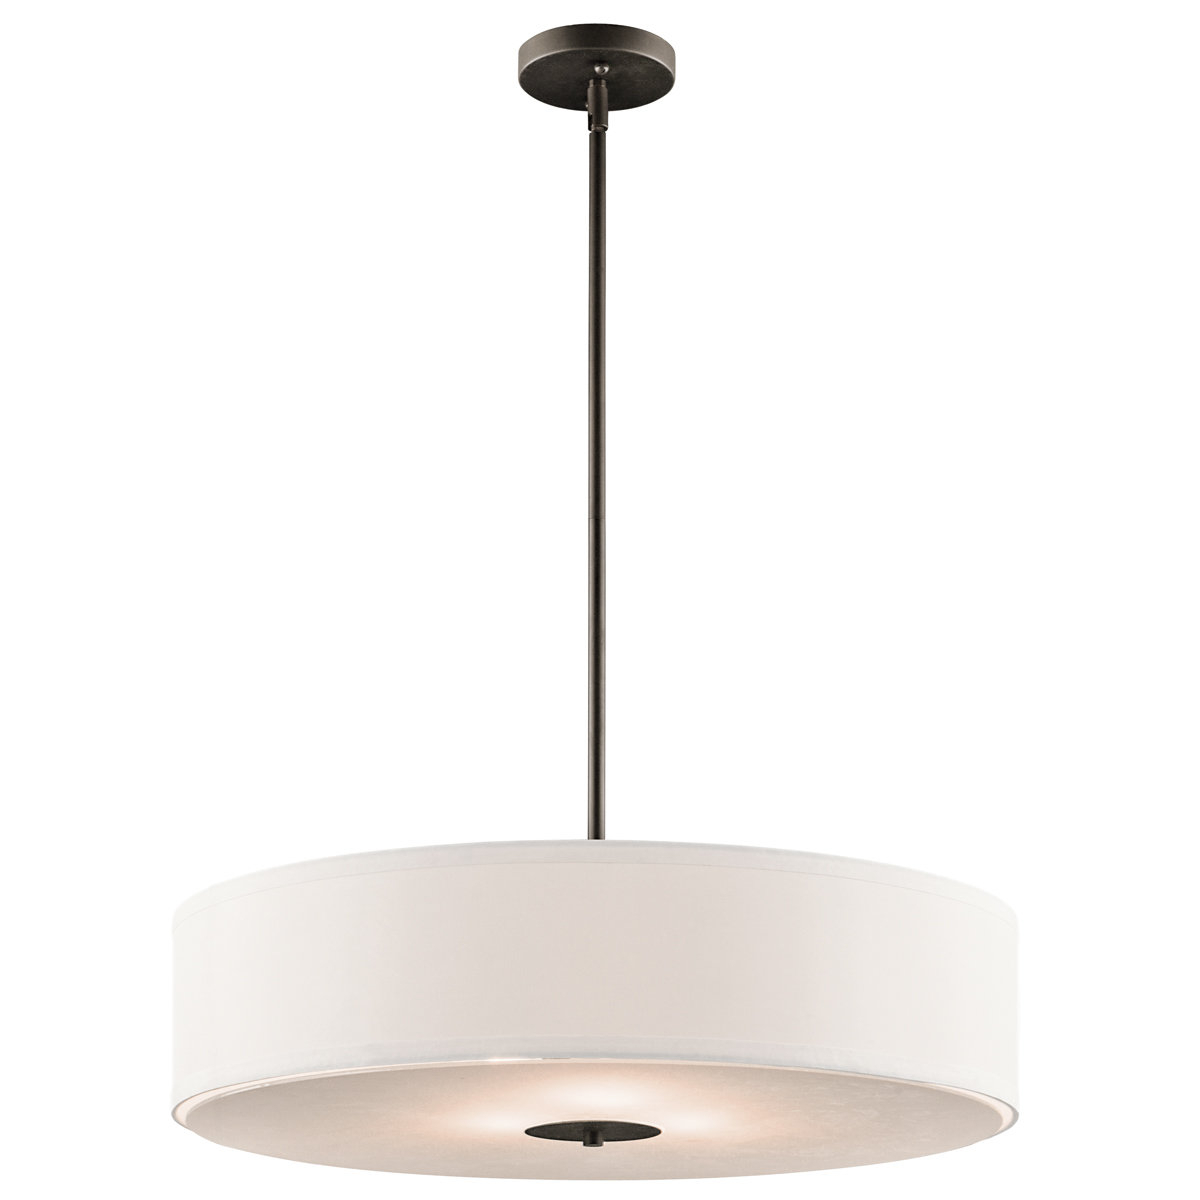 Boyer 3 Light Drum Chandelier With Regard To Alina 5 Light Drum Chandeliers (View 14 of 30)